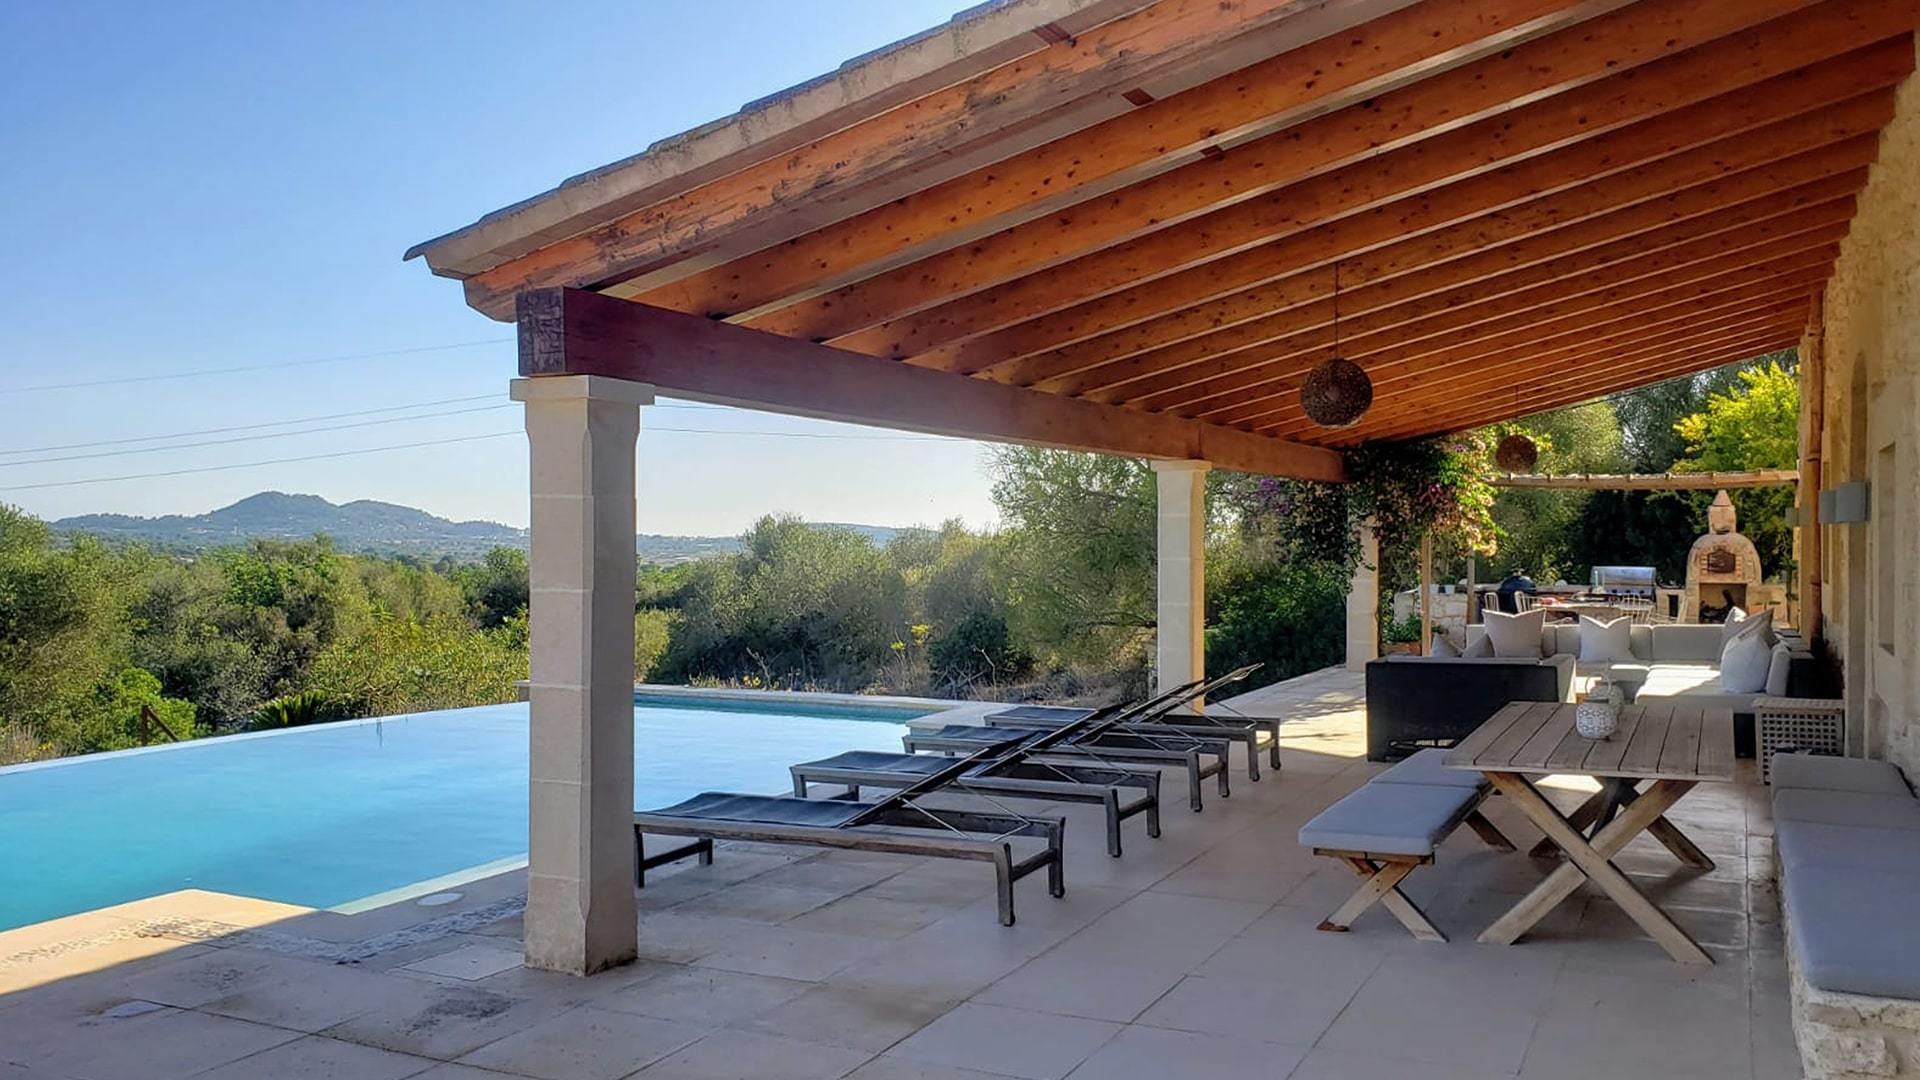 Solysia solar pannels Mallorca pool terrase and mountian view min